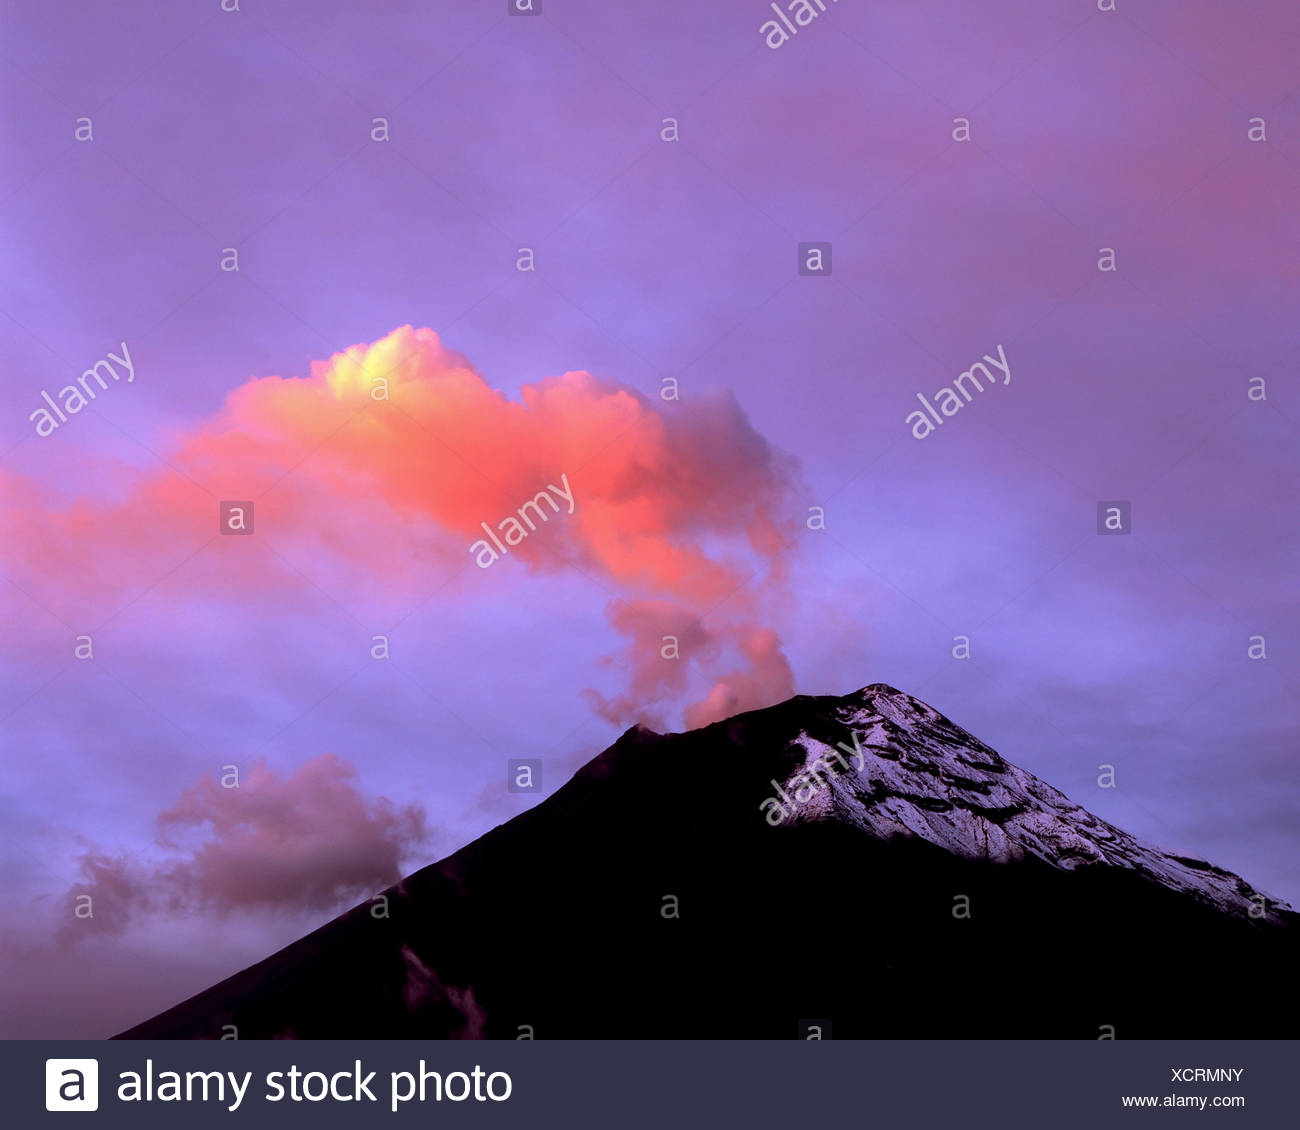 Orange-Tinted Steam Vents From the Caldera of Tungurahua Volcano After a Recent Eruption - Stock Image